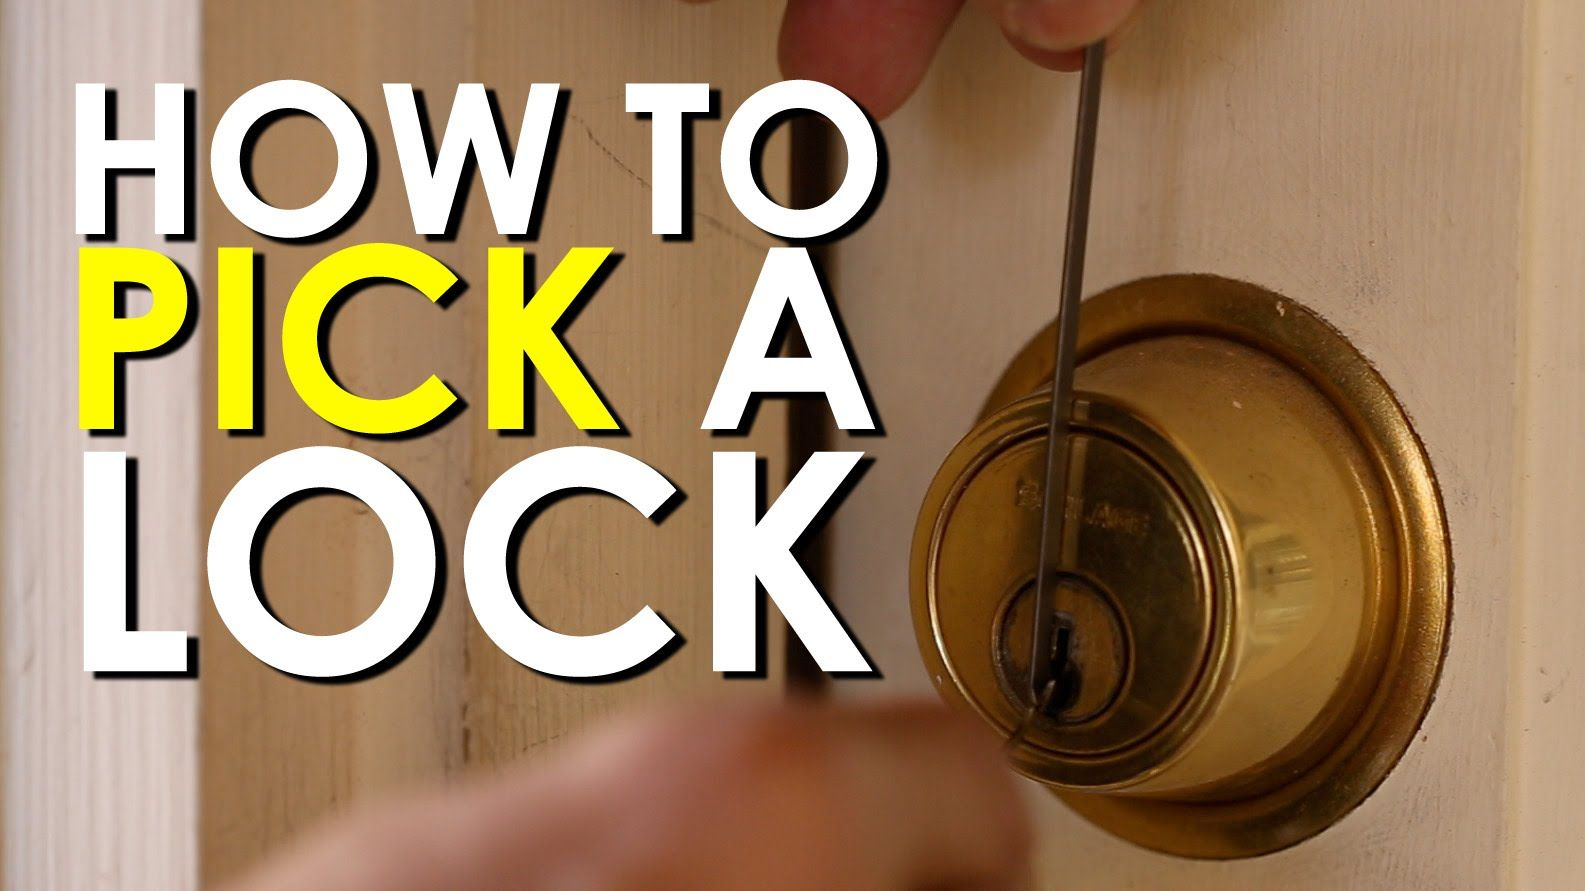 How To Pick A Lock The Art Of Manliness Art Of Manliness Lock Picking Tools Lock